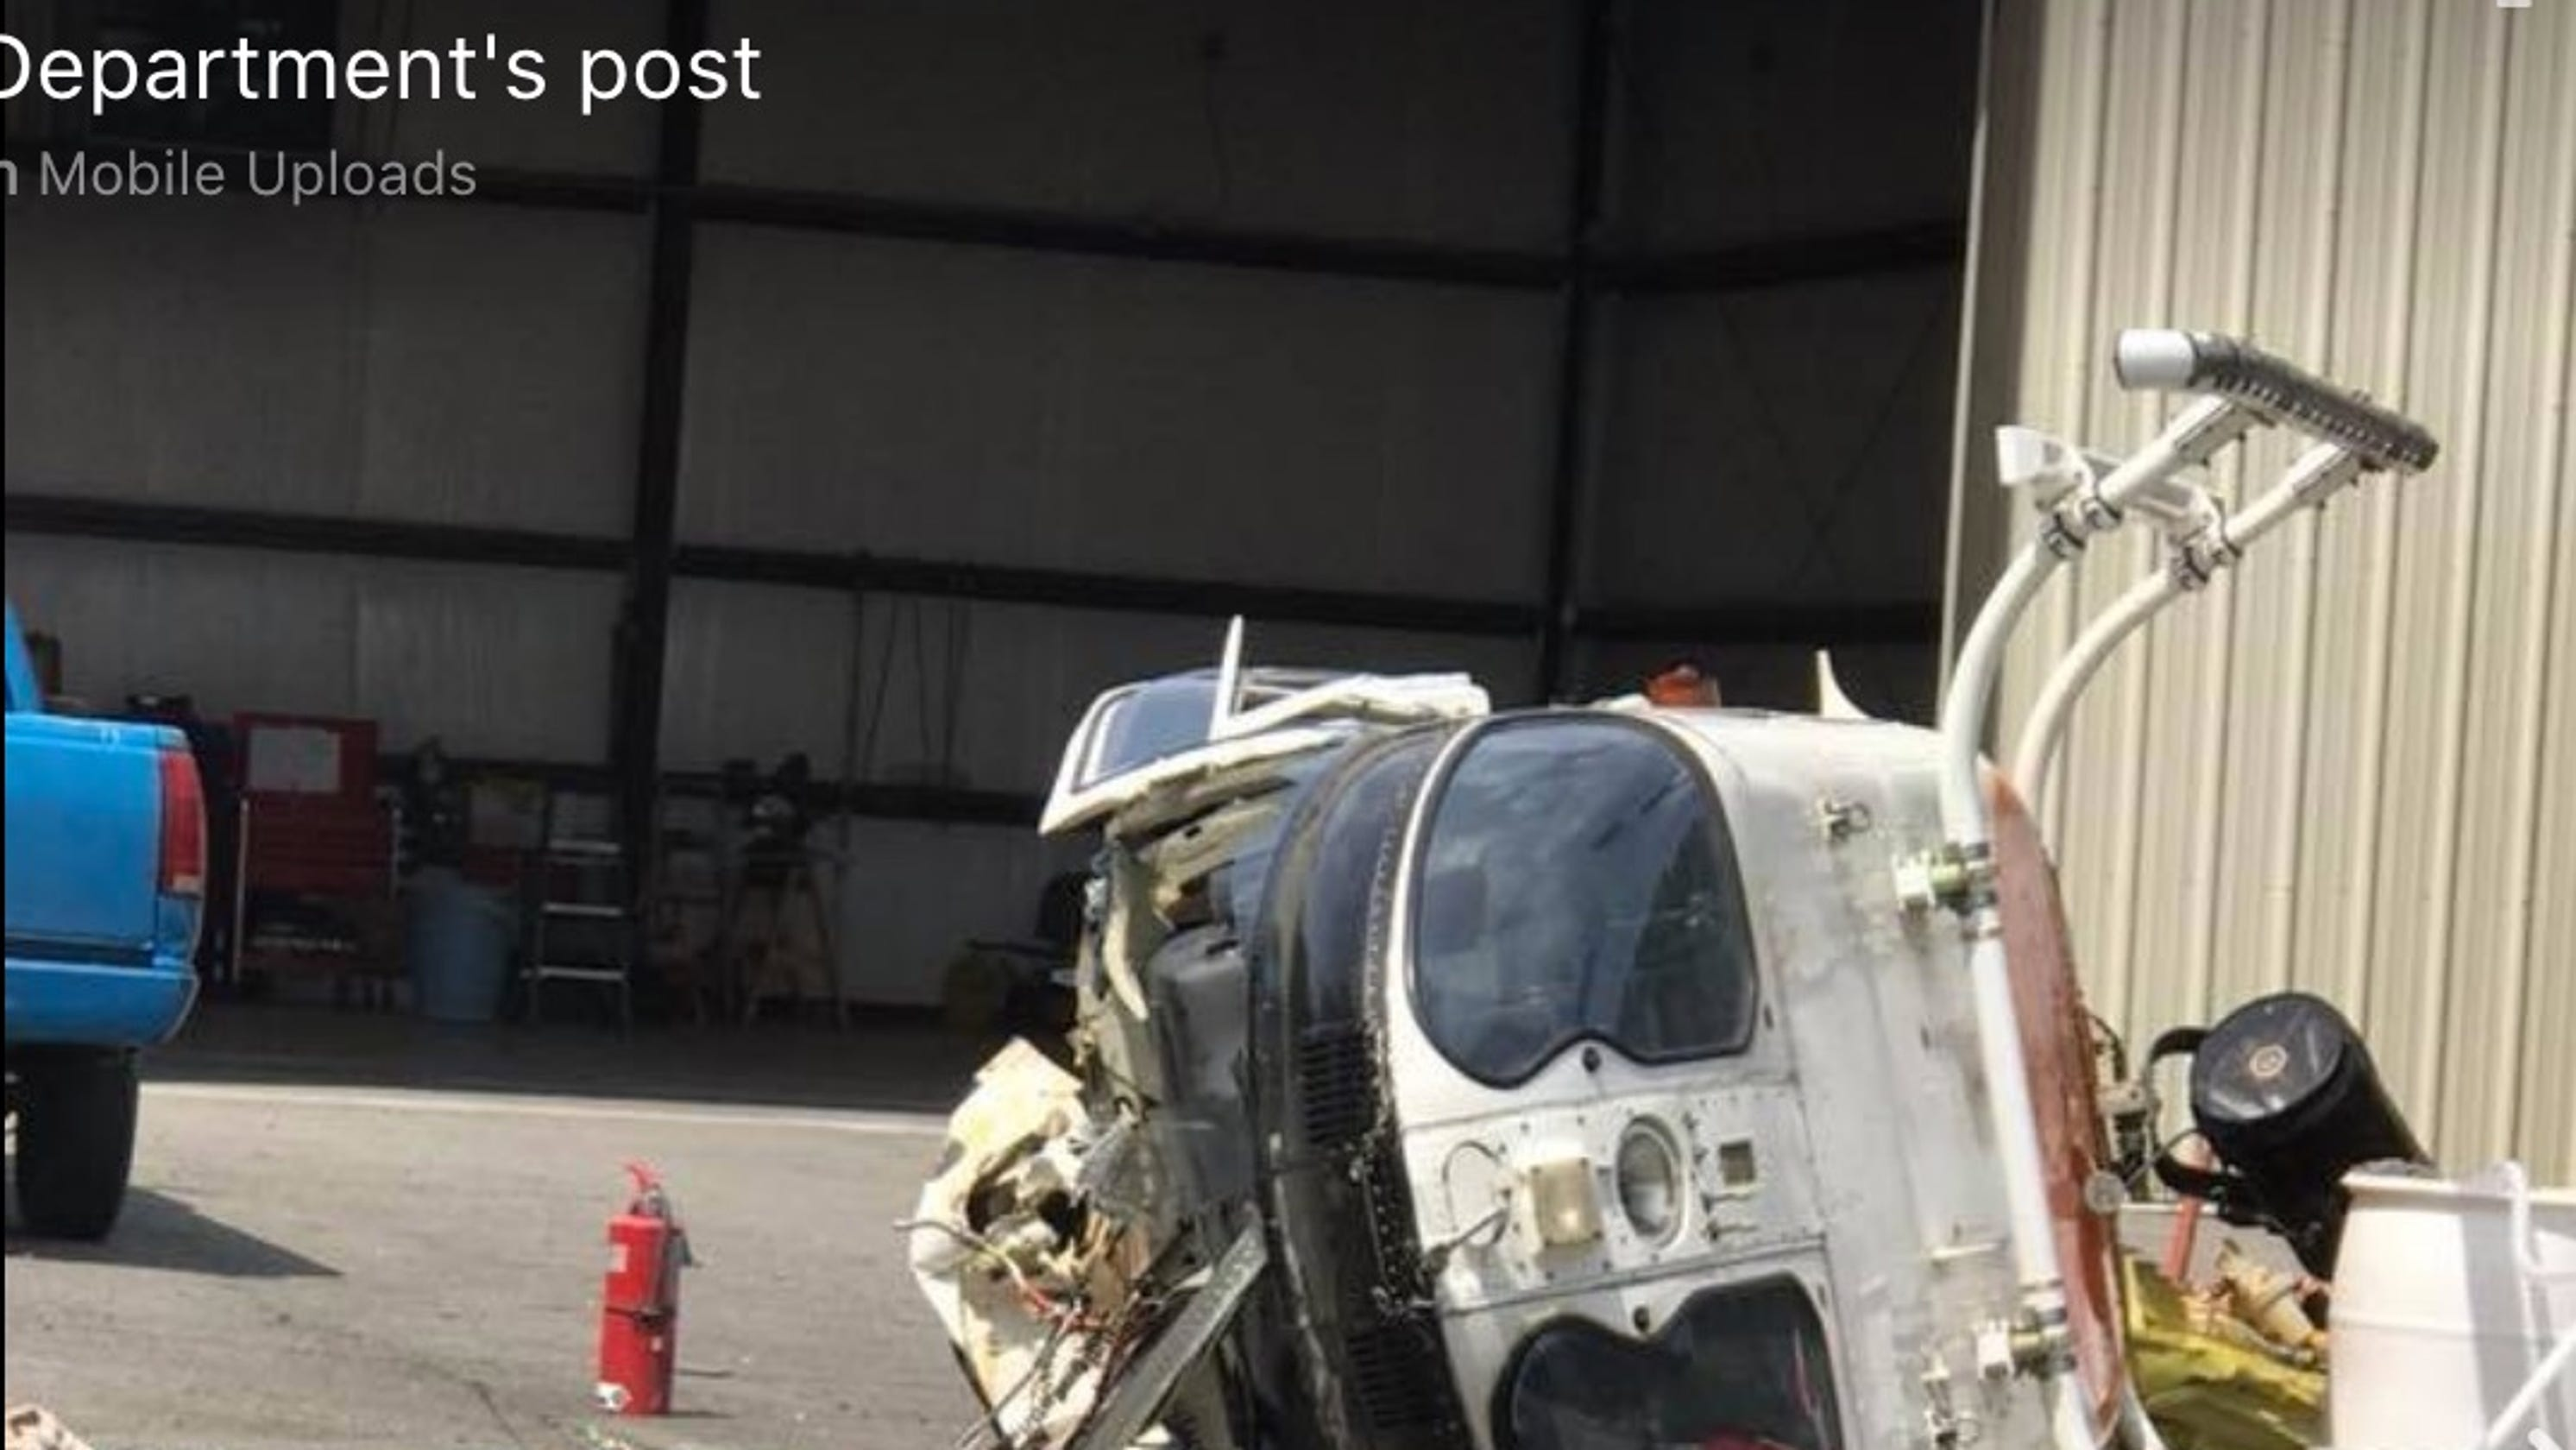 Police helicopter crash video from Little Rock, Arkansas released